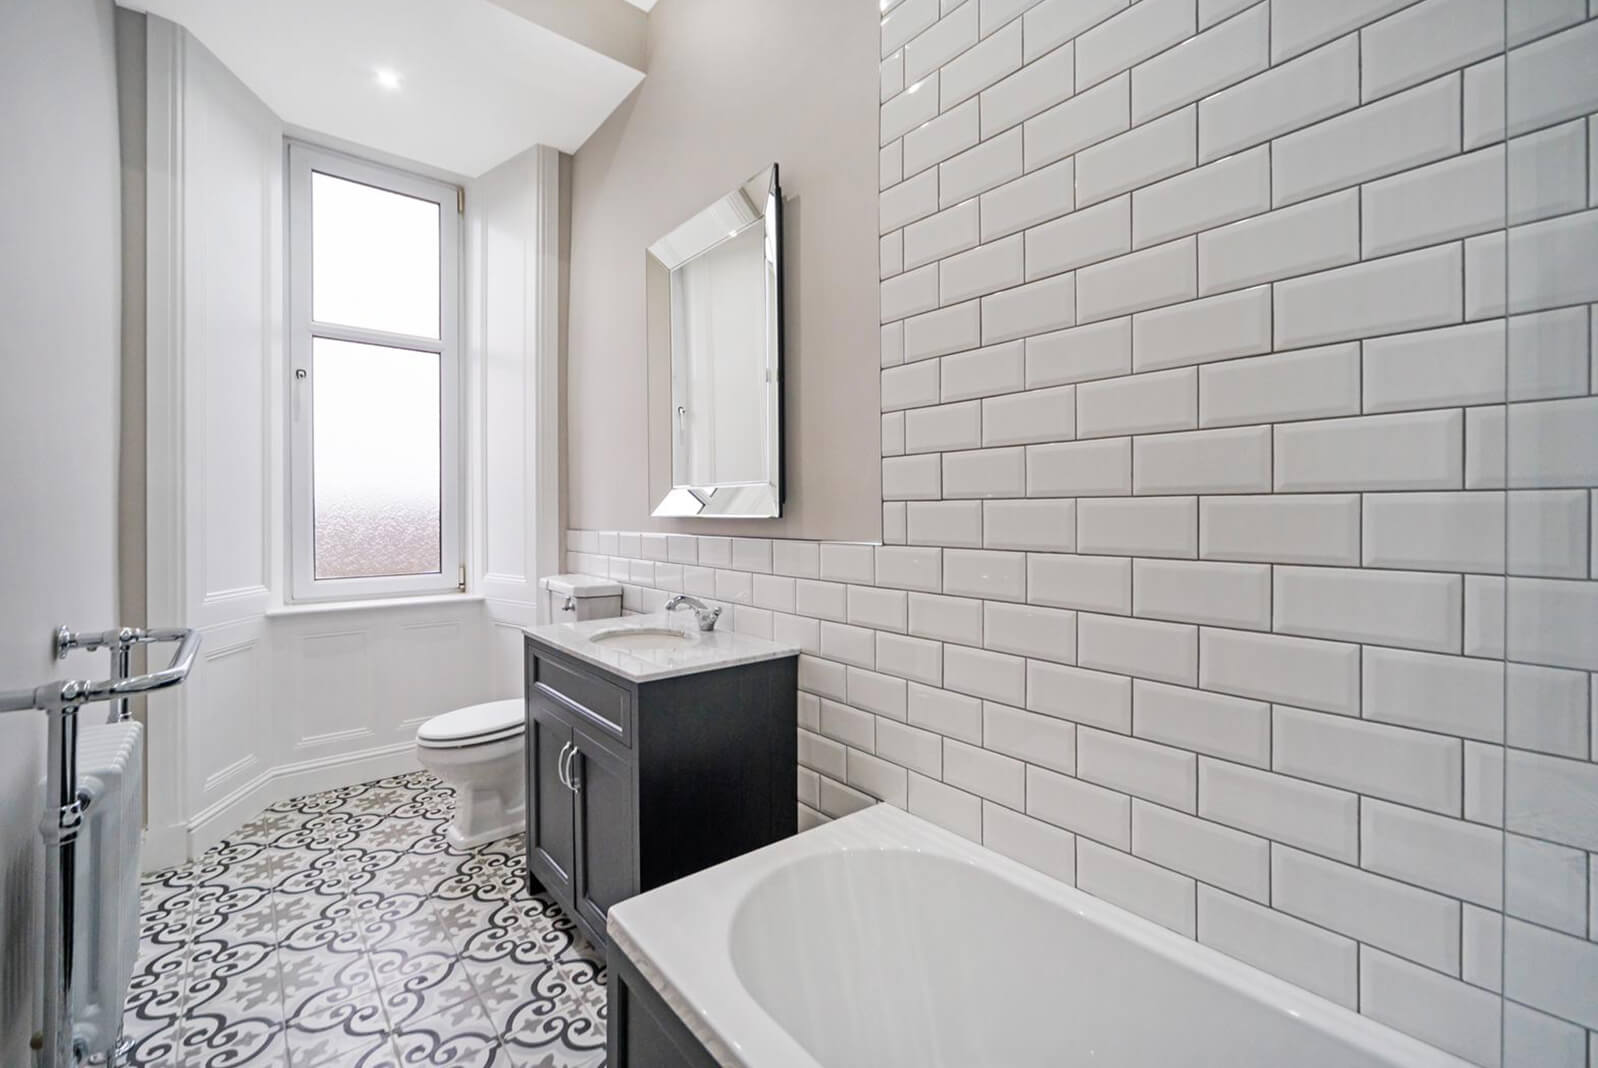 Bathroom with partially white tiled walls and decorative floor tiles. Marble top hand basin, with white toilet and bath.